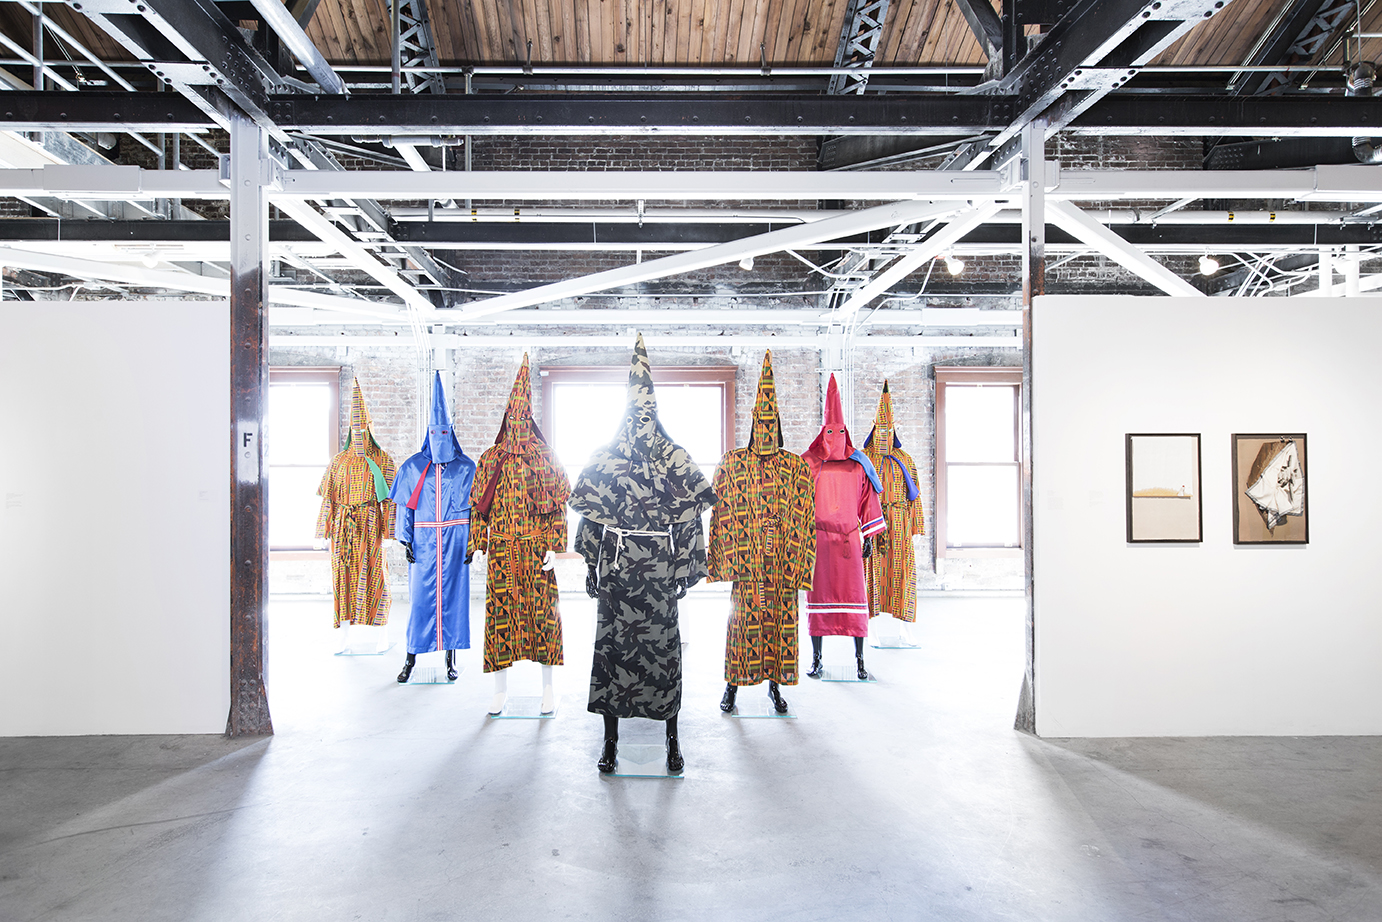 Paul Rucker  Birth of a Nation,  7 KKK robes, 2016 Image by Rafael Soldi